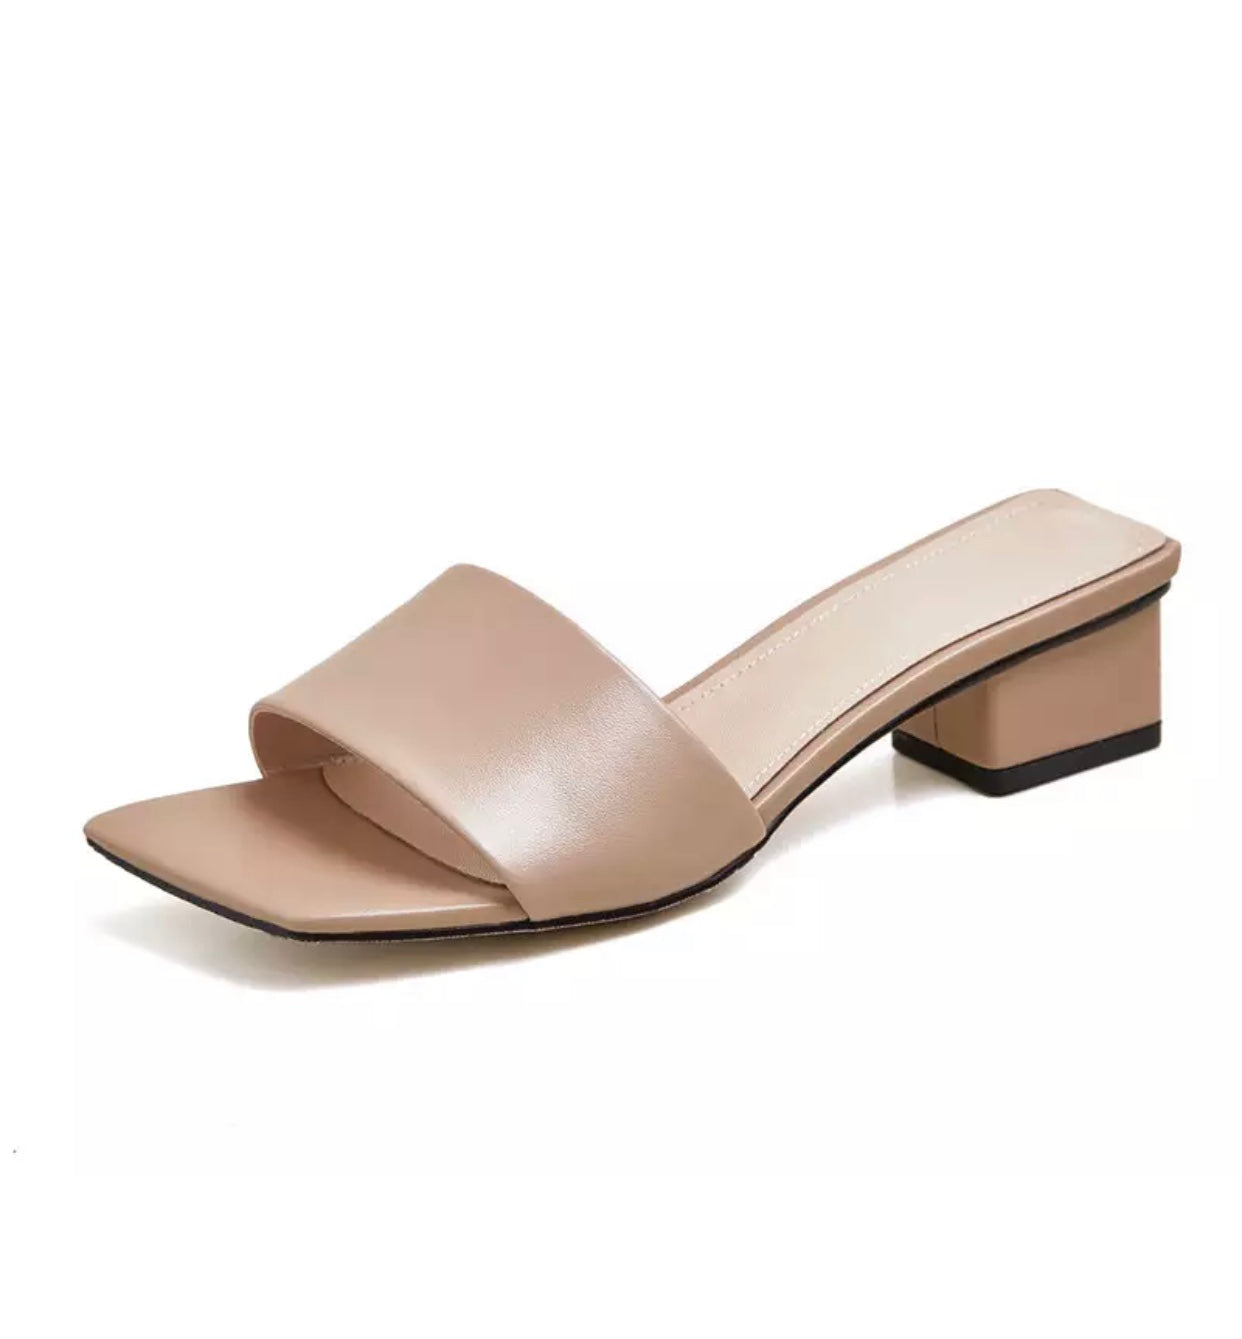 Square Leather Mules